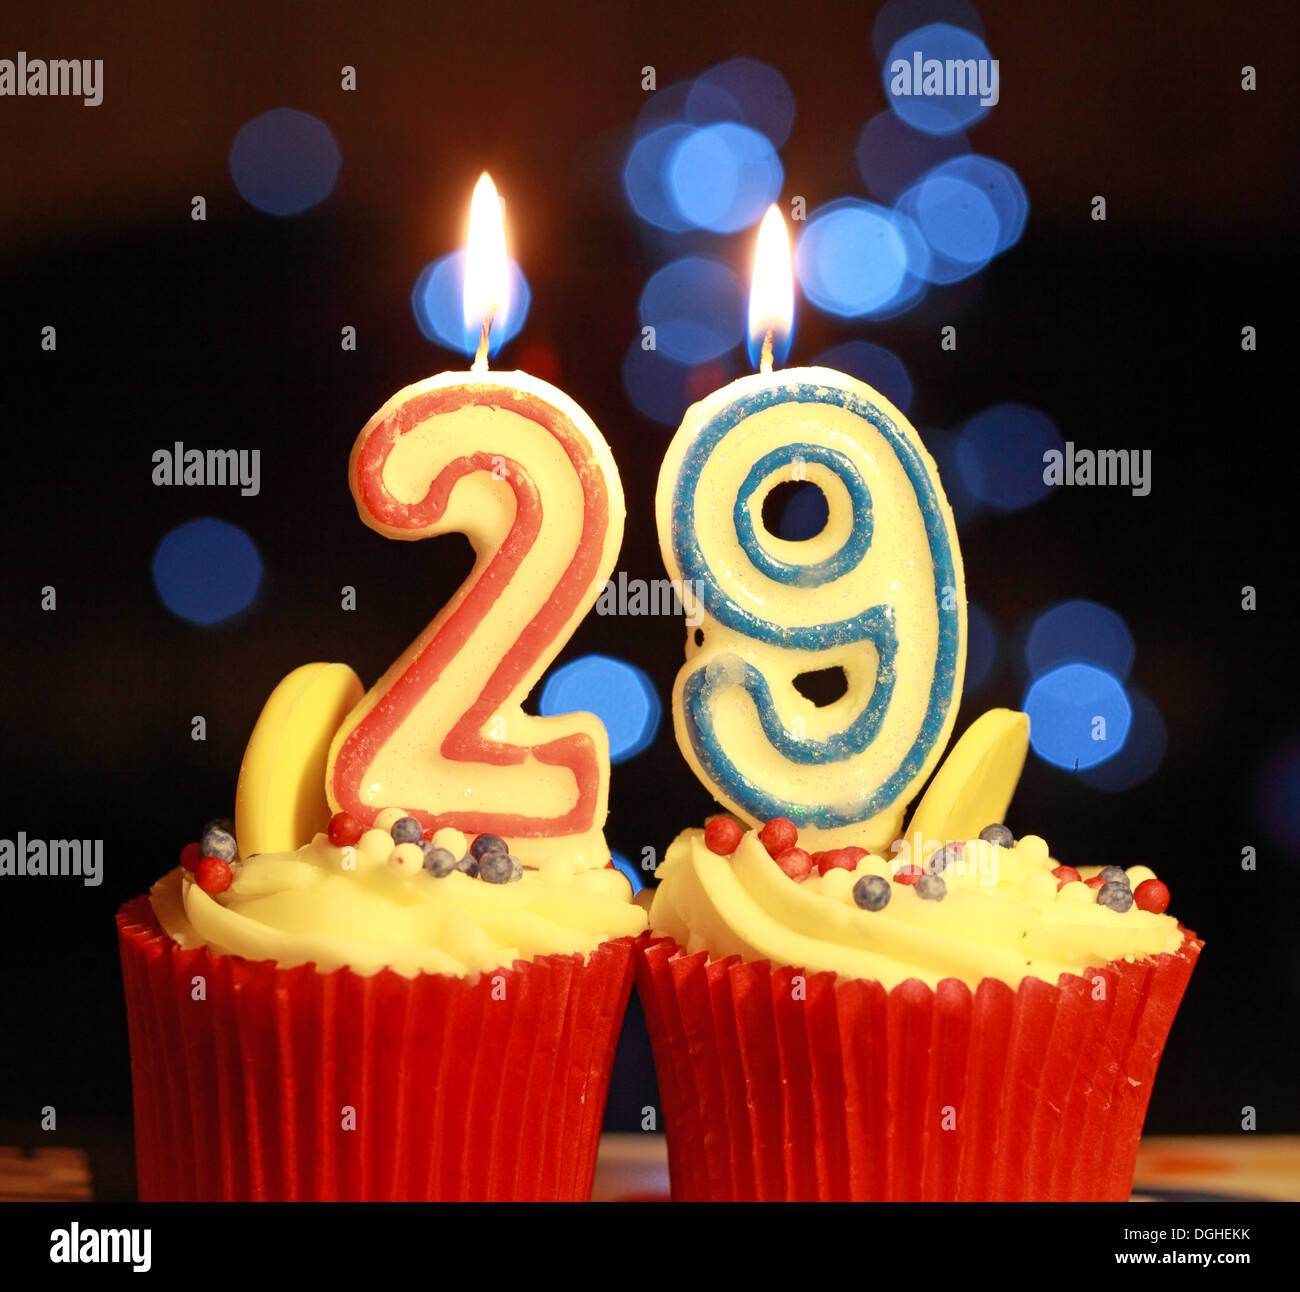 TwentyNine the number 29 as burning candles , on iced muffin - Stock Image